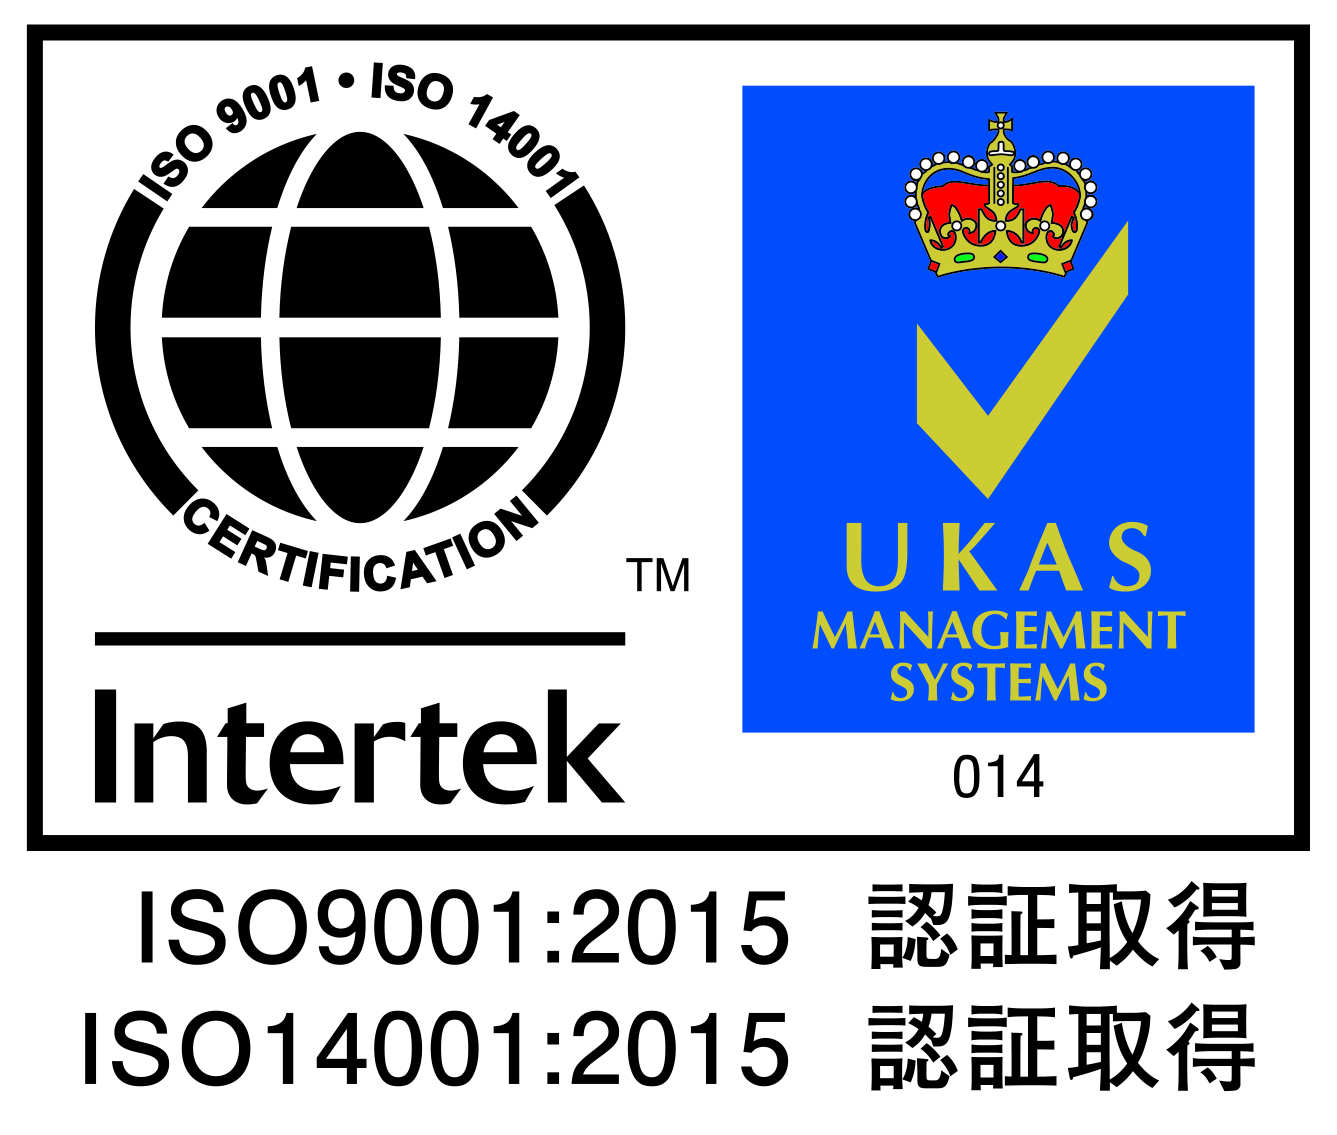 intertek9001